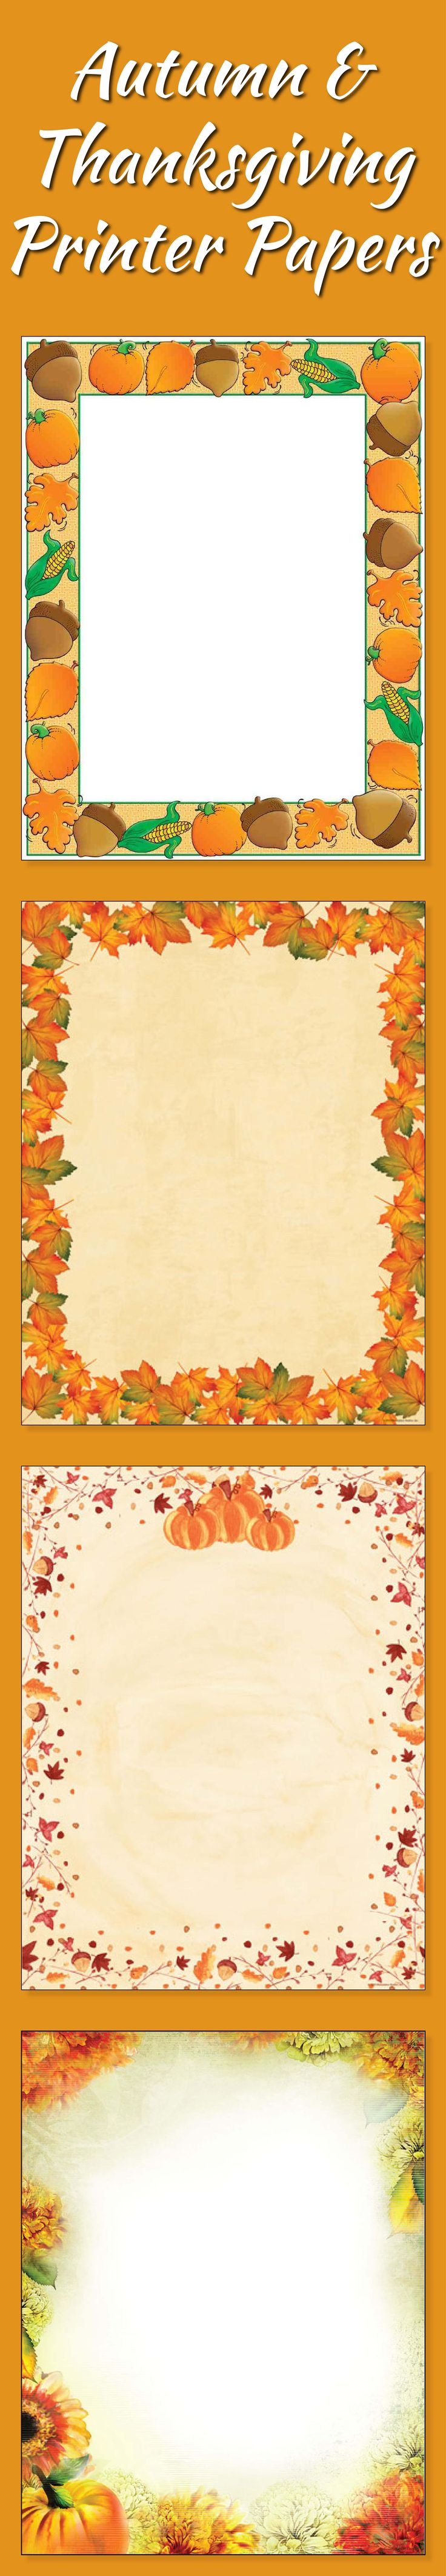 Pick the perfect autumn themed paper for your next Fall, Harvest Festival, Thanksgiving, or Autumn party, BBQ, or event. Create beautiful flyers, invitations, or announcements, right from your computer, using your laser printer, ink jet printer, or copier. http://www.yourofficestop.com/thfapa.html